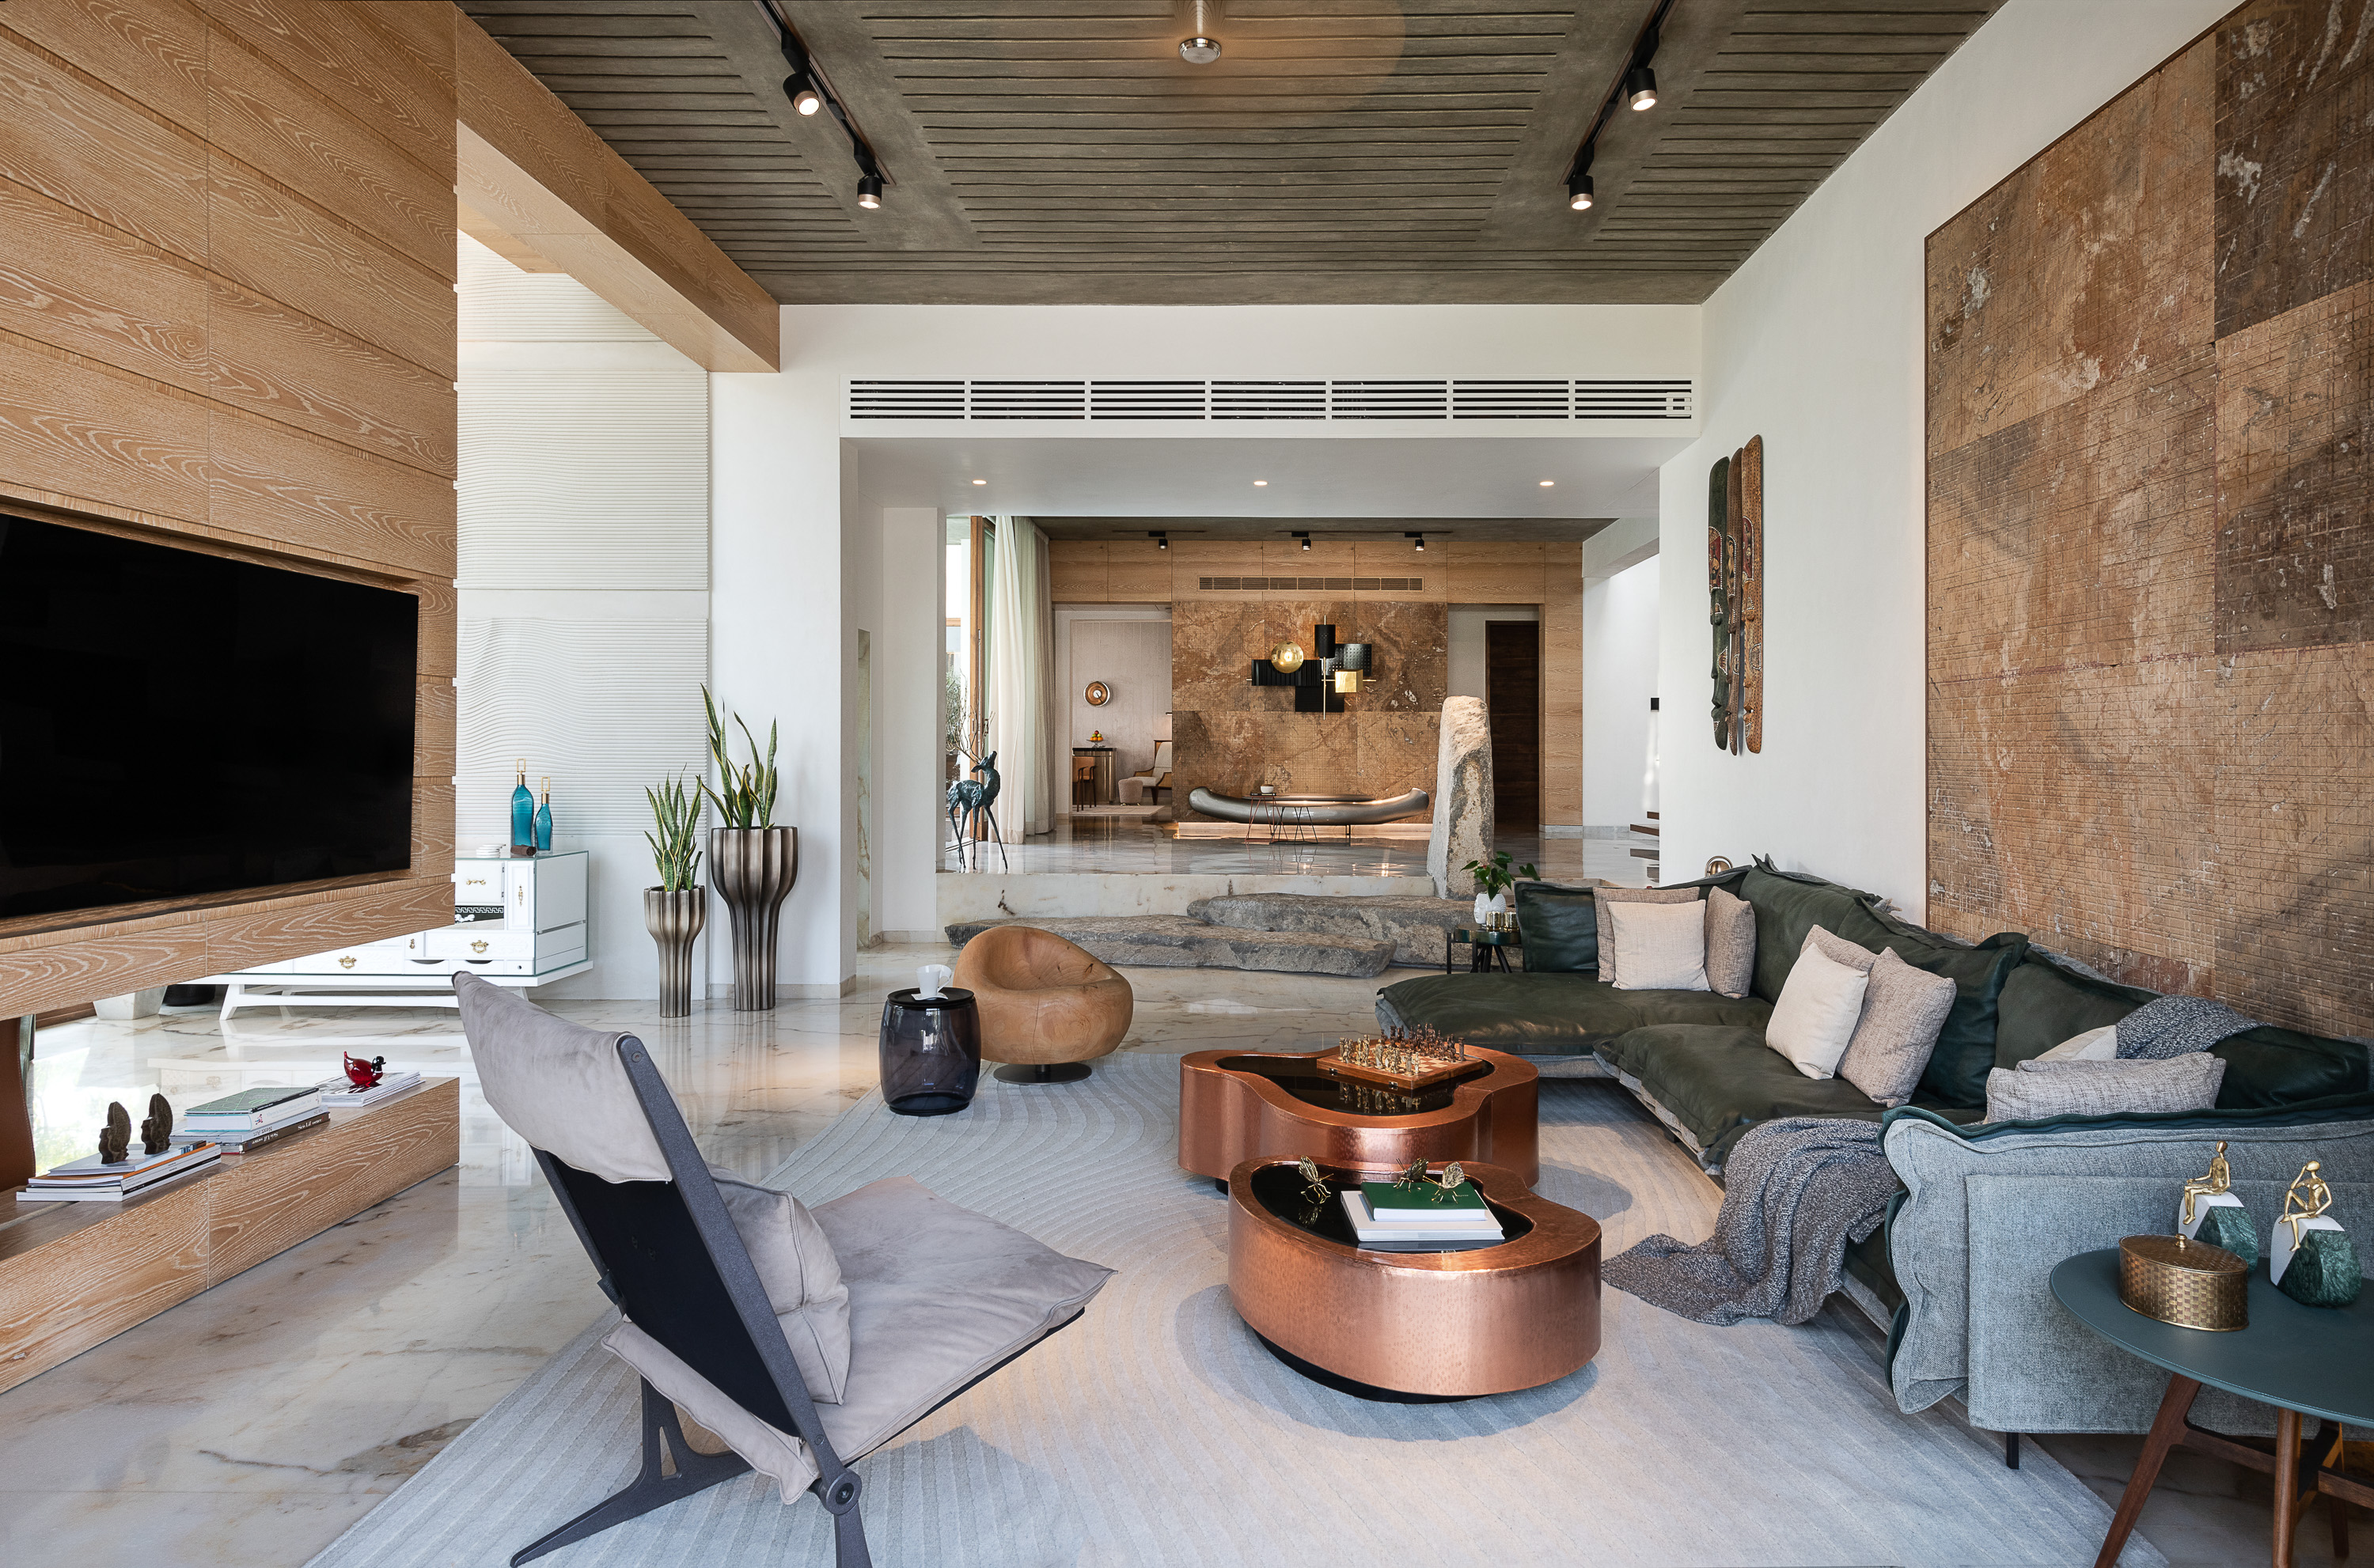 Sustainability Meets Luxury In This Private Residence by NA Architects (1) na architects Sustainability Meets Luxury In This Private Residence by NA Architects Sustainability Meets Luxury In This Private Residence by NA Architects 1